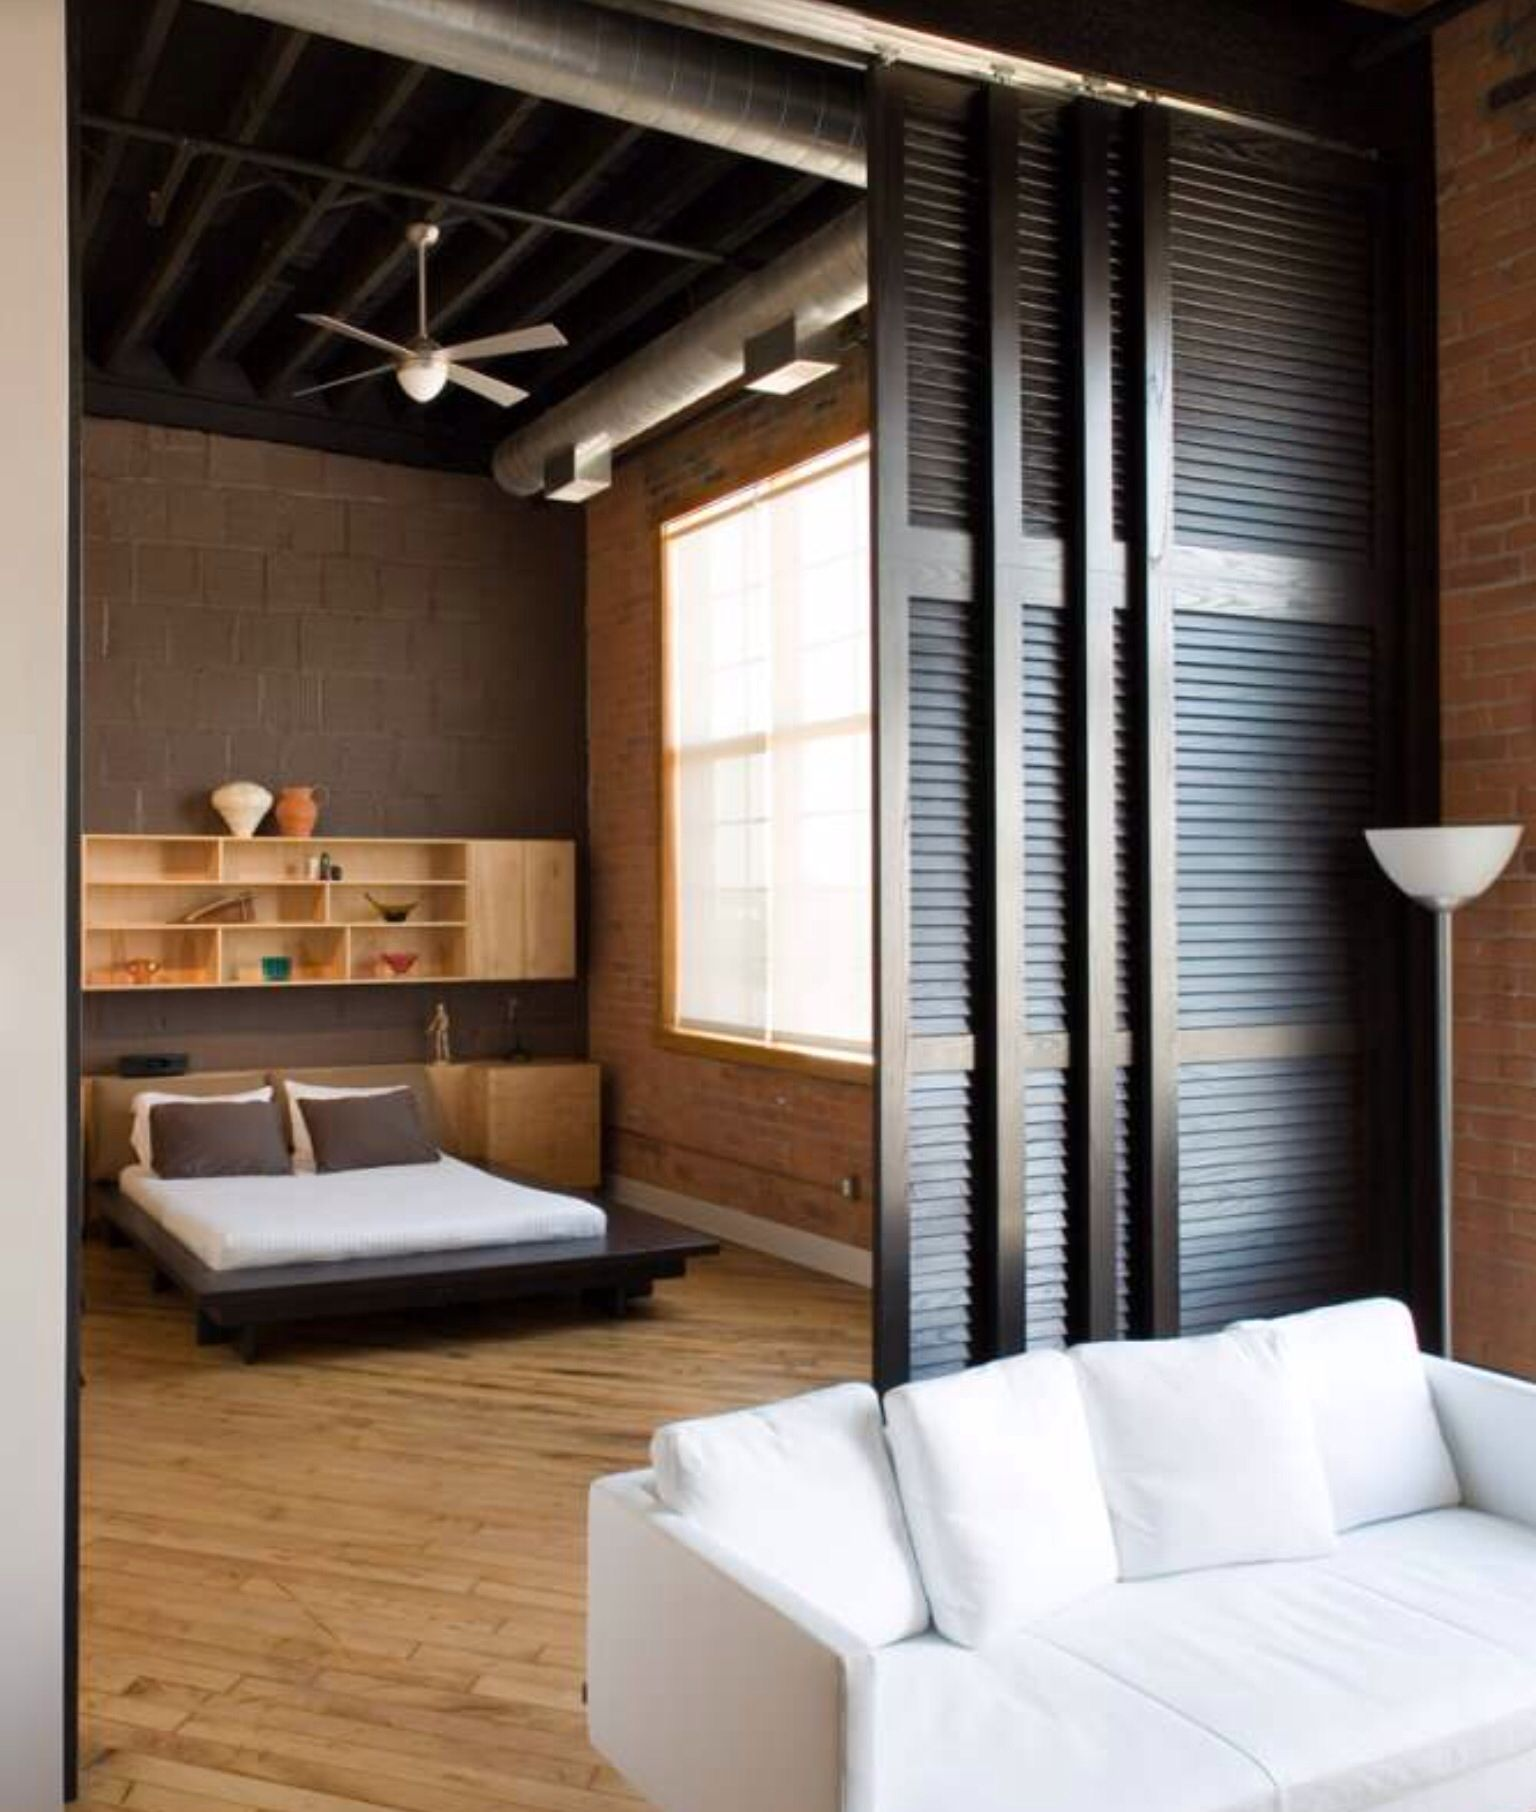 Fab sliding doors to section off rooms or for closing in